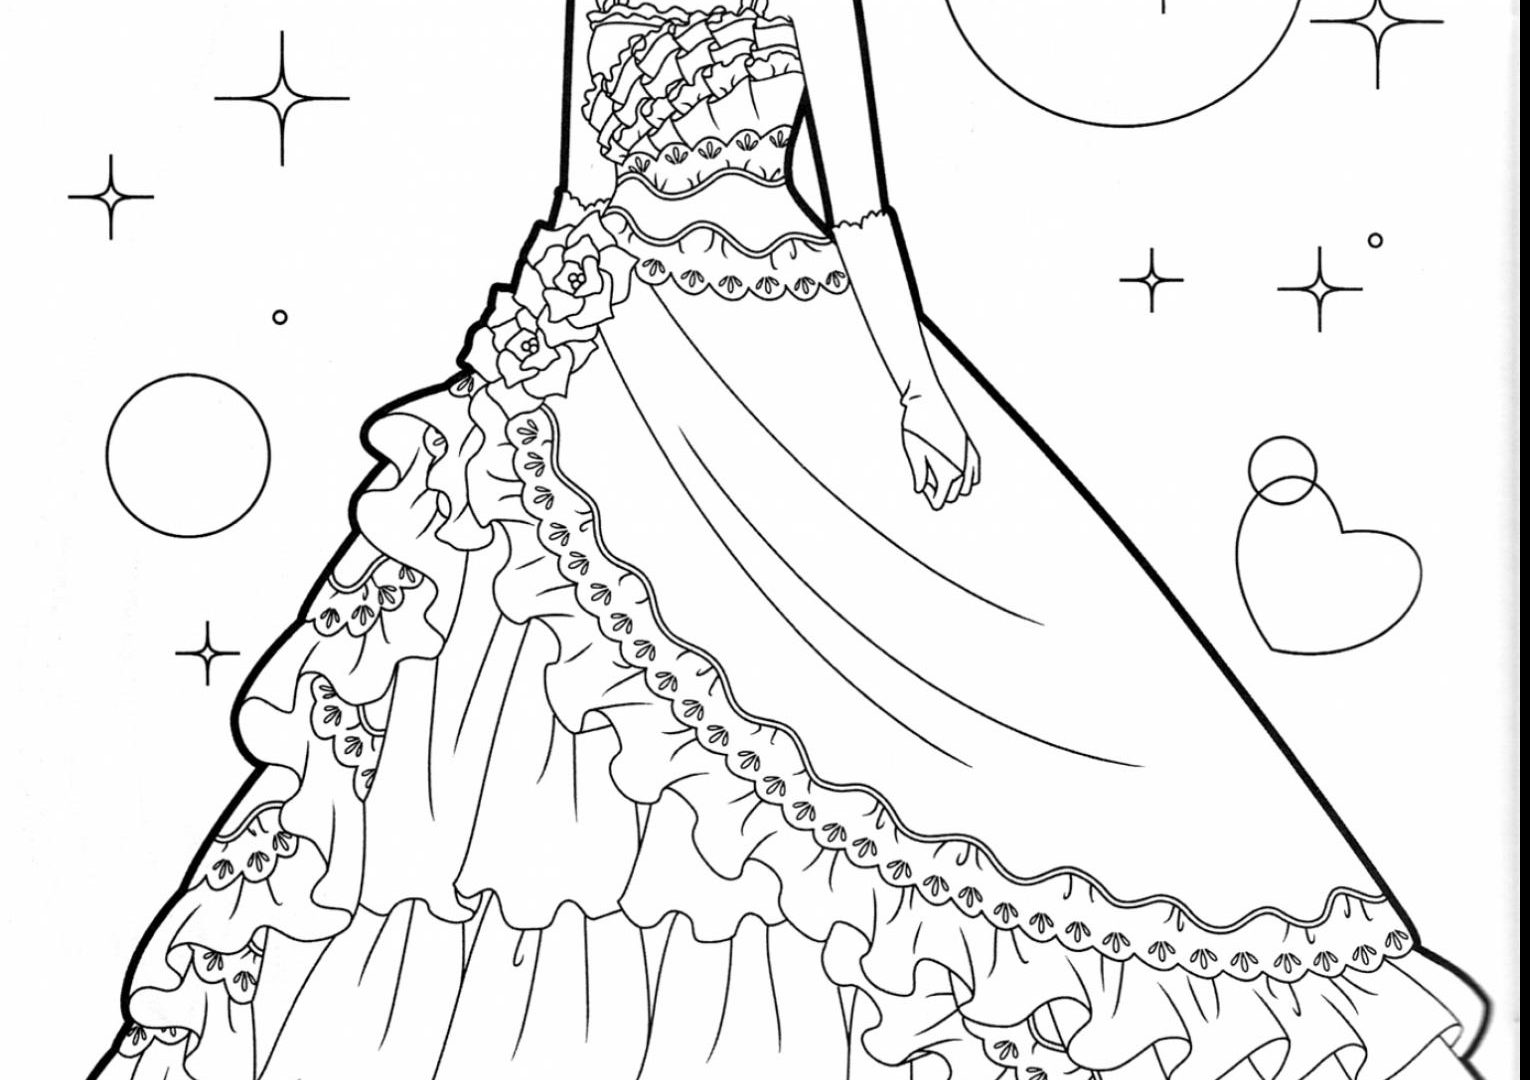 Manga Girl Coloring Pages At Getcolorings